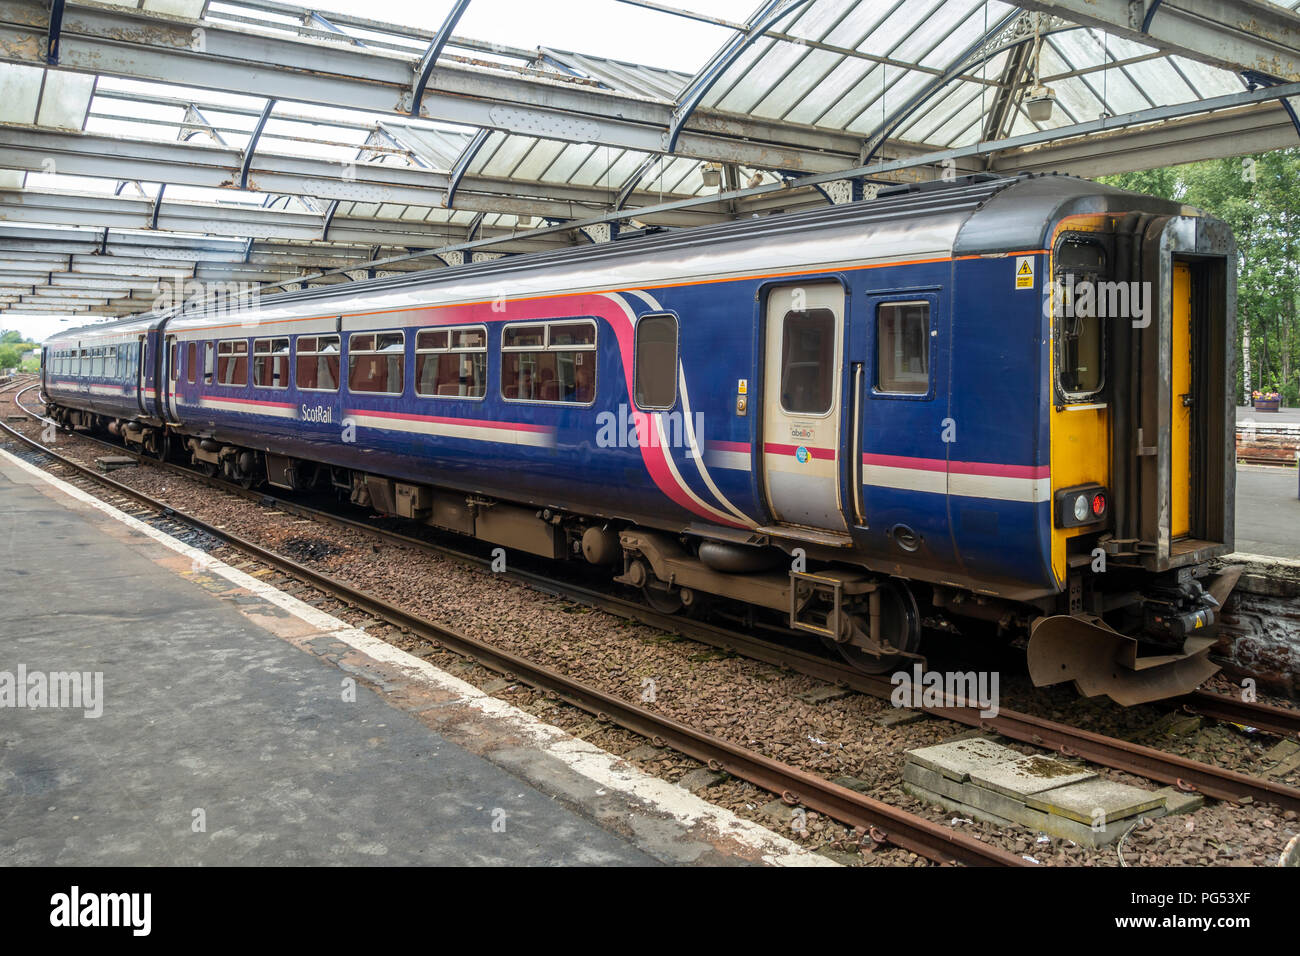 A ScotRail Class 156 'Super Sprinter' train, stationary at a platform in Kilmarnock Railway Station in East Ayrshire, Scotland. - Stock Image